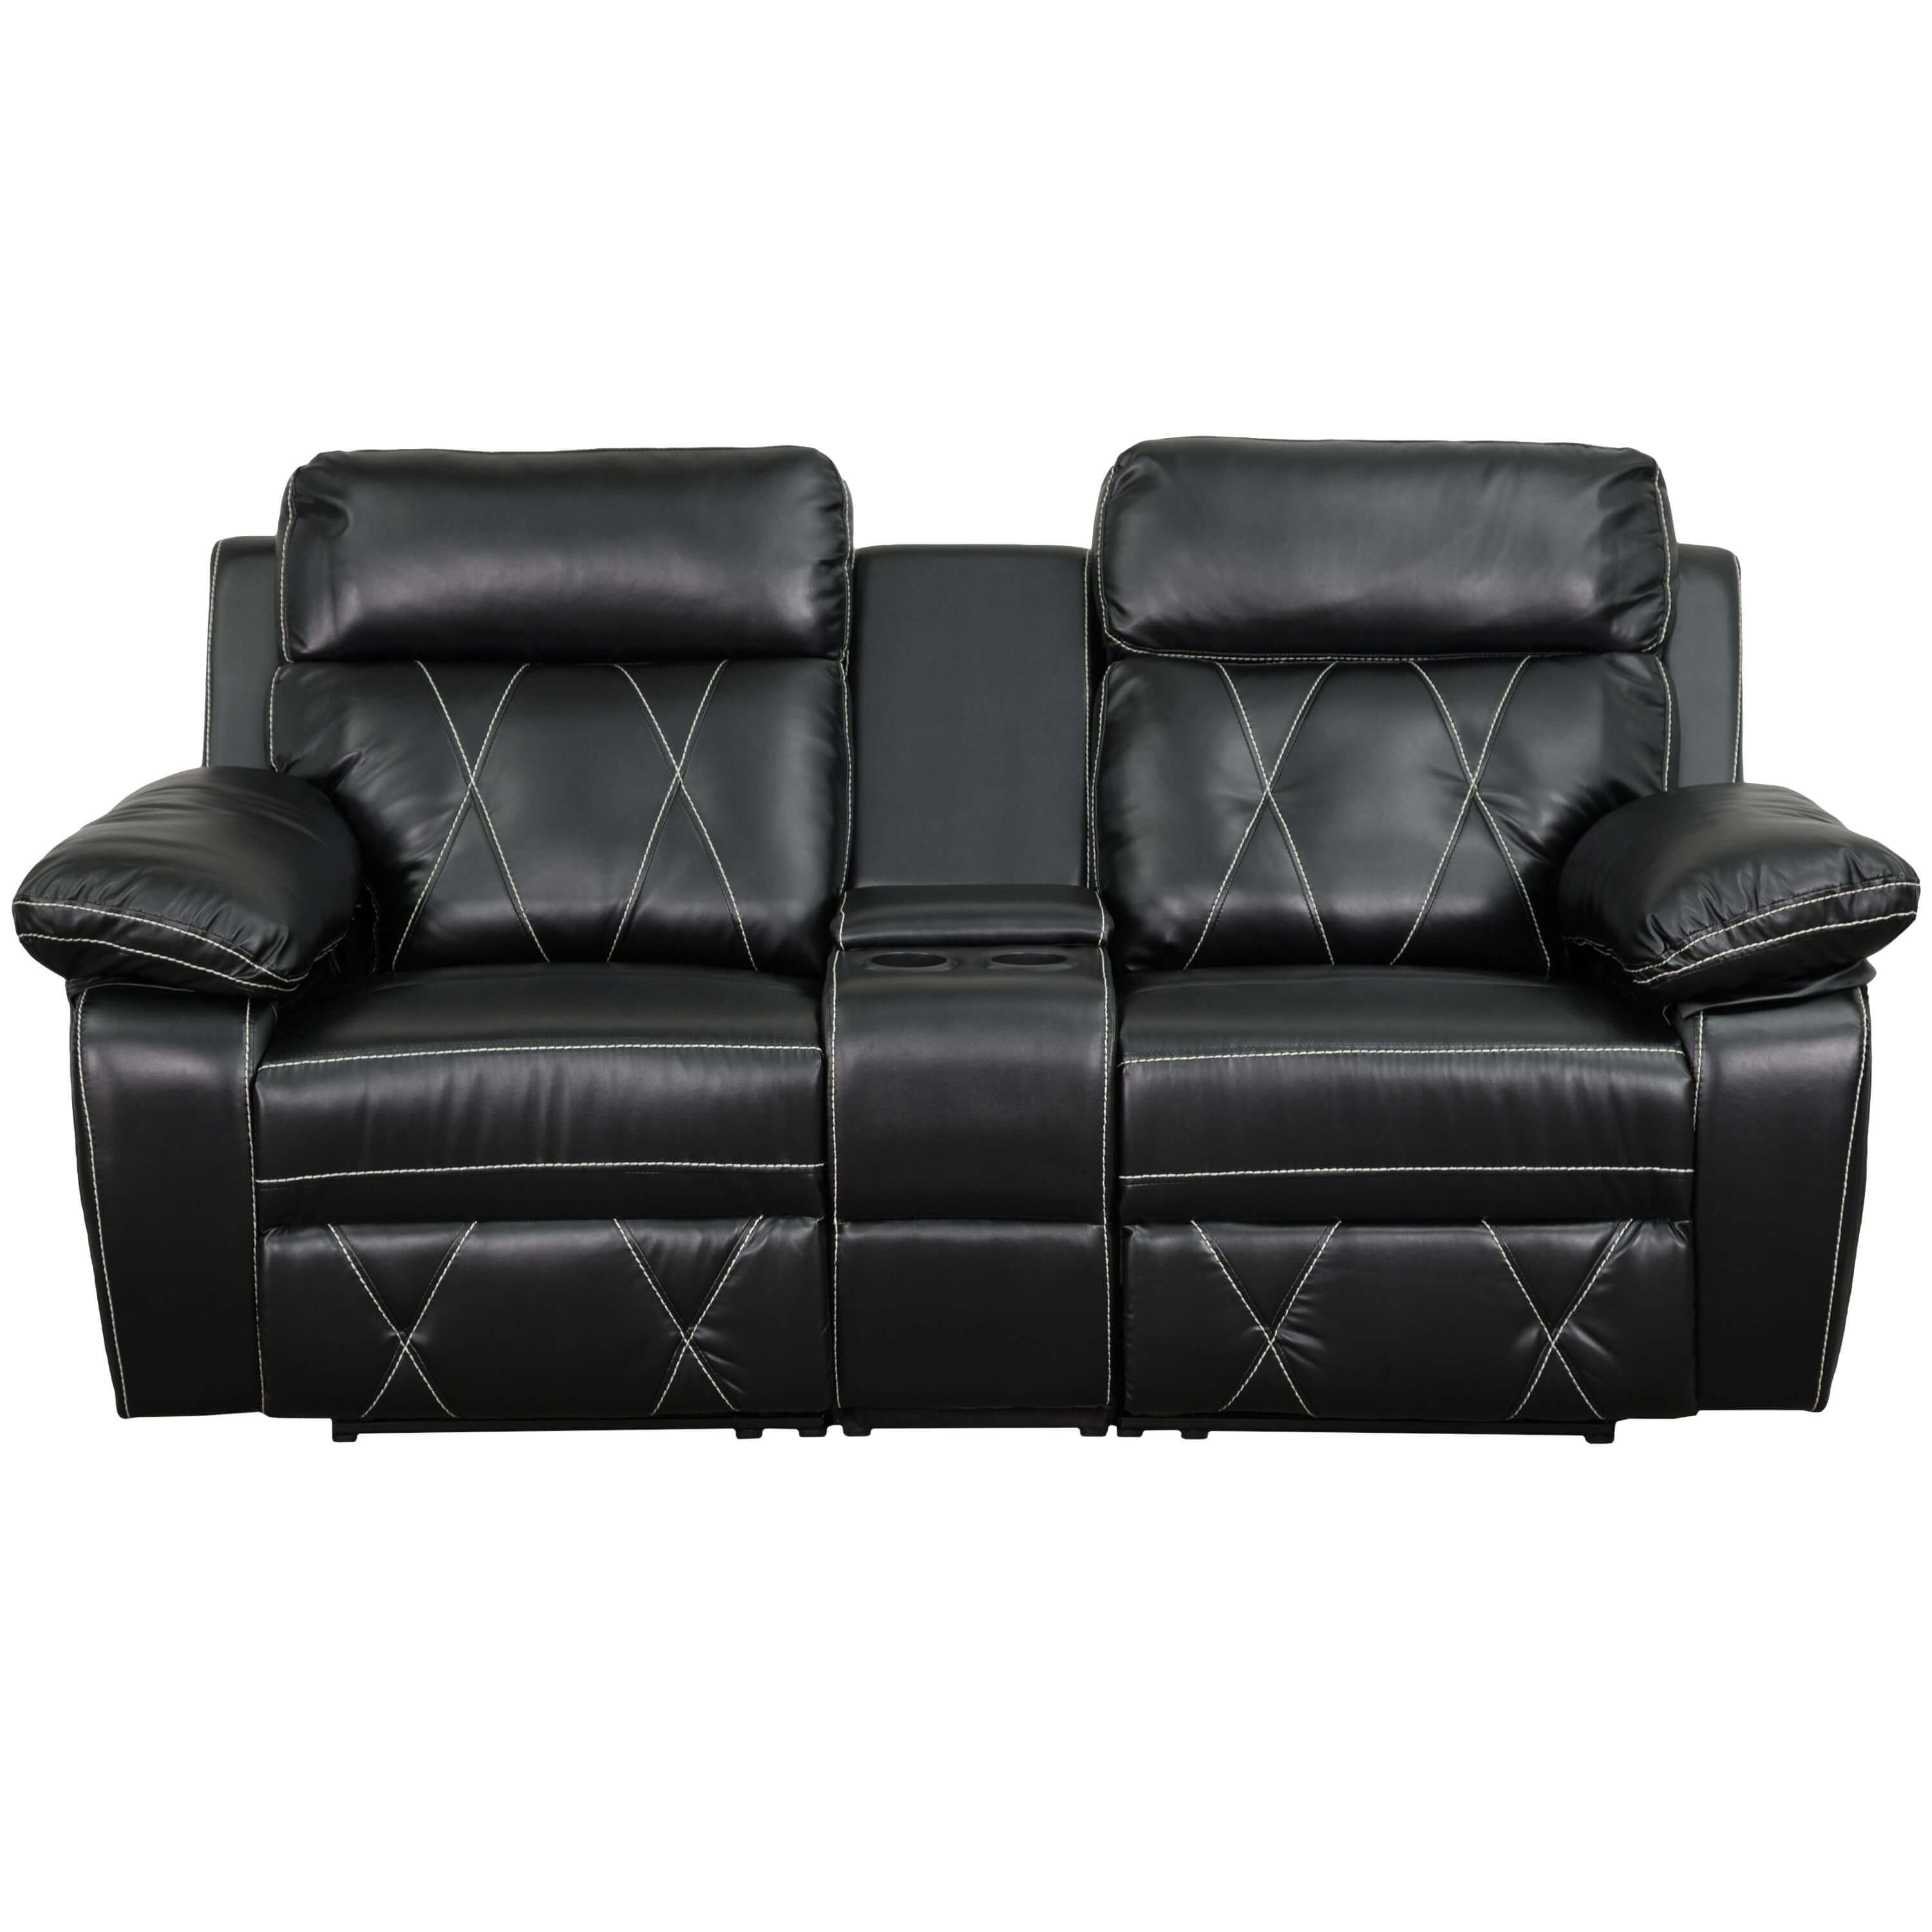 theater chairs with cup holders hammock chair canada gable cinema